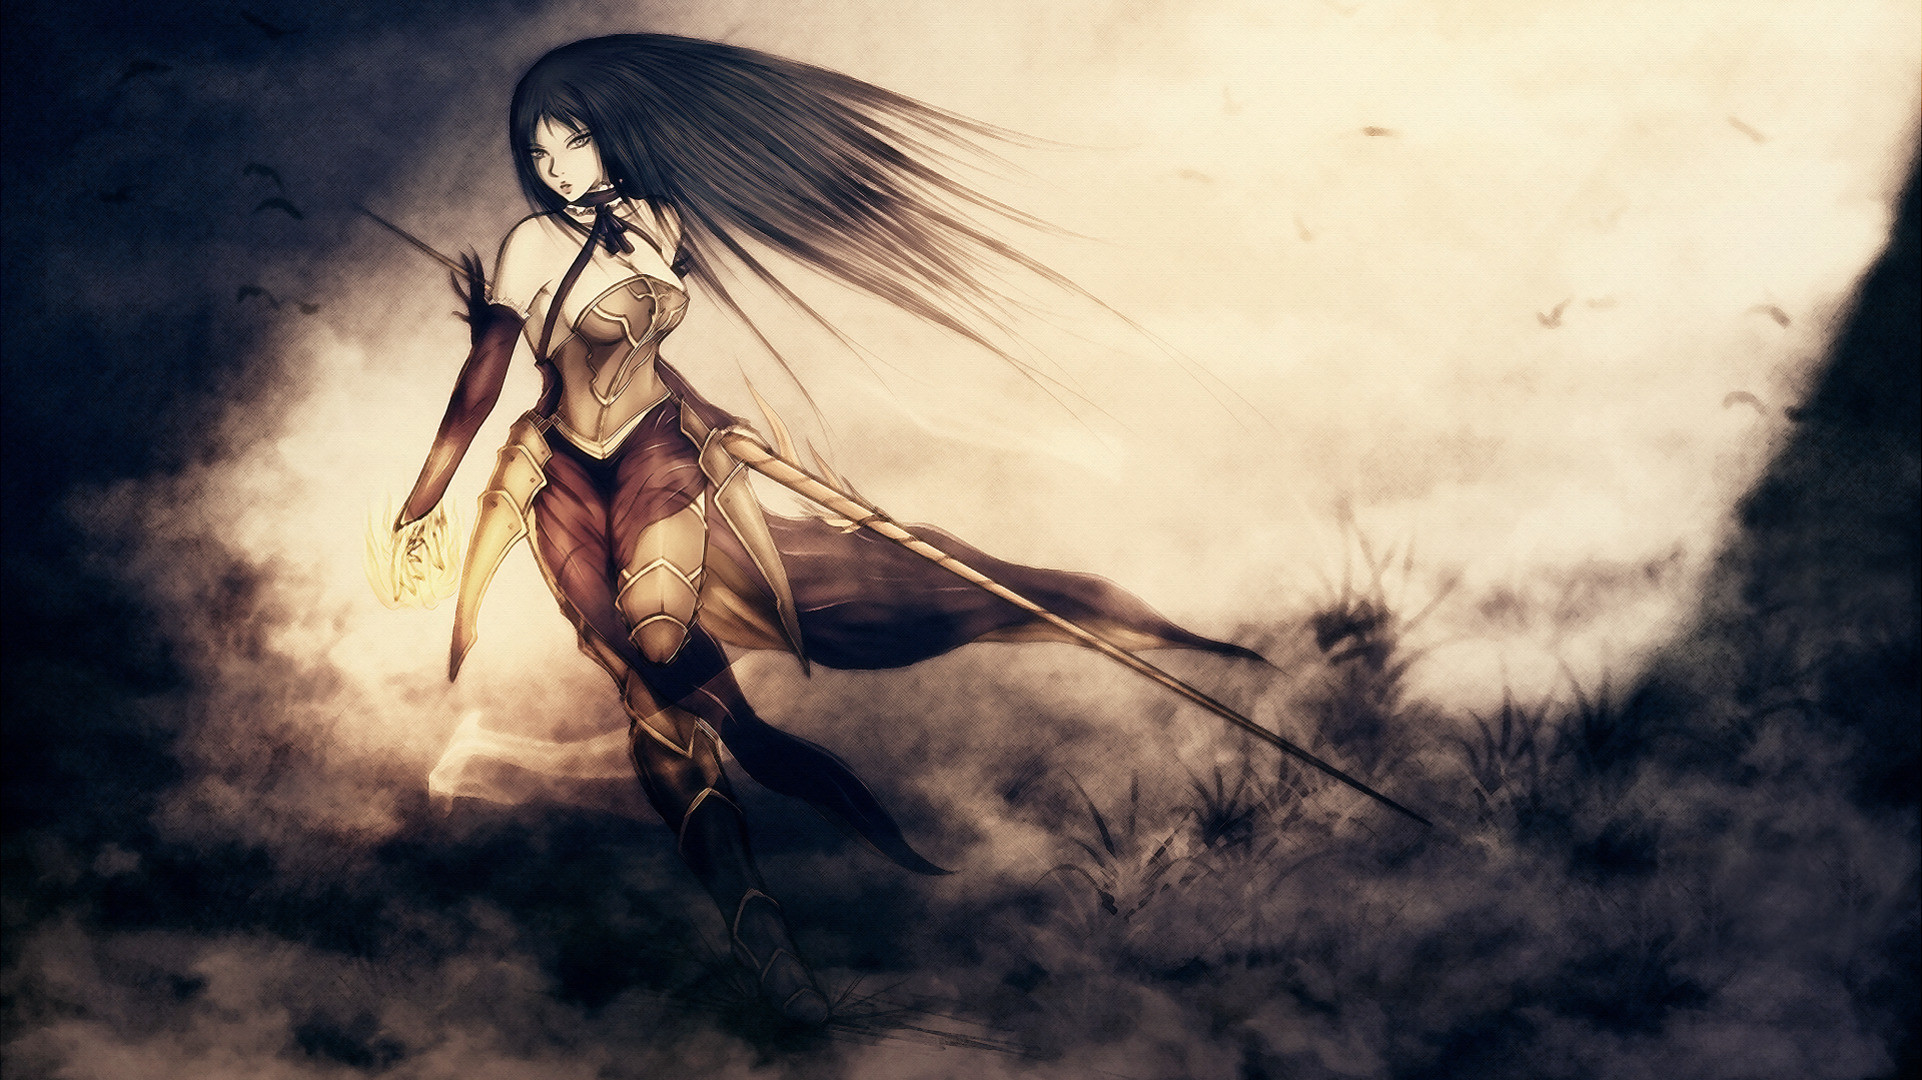 Res: 1922x1080, 1920x1080 undefined Castlevania Wallpapers (36 Wallpapers) | Adorable  Wallpapers